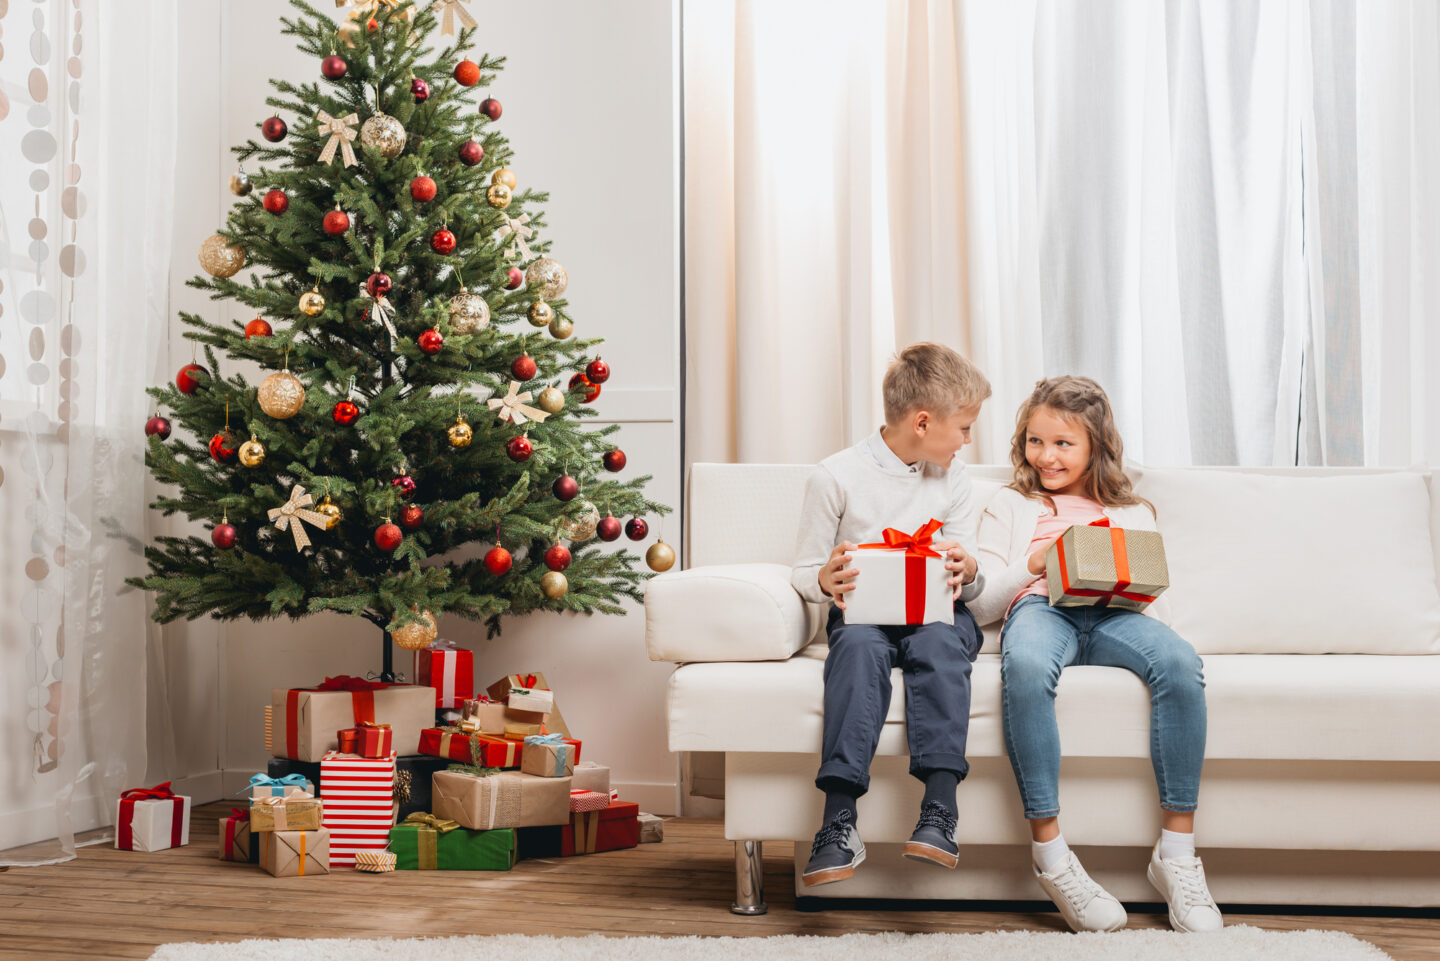 Sibling Gifts: Should my Children Buy Each Other Christmas Presents?